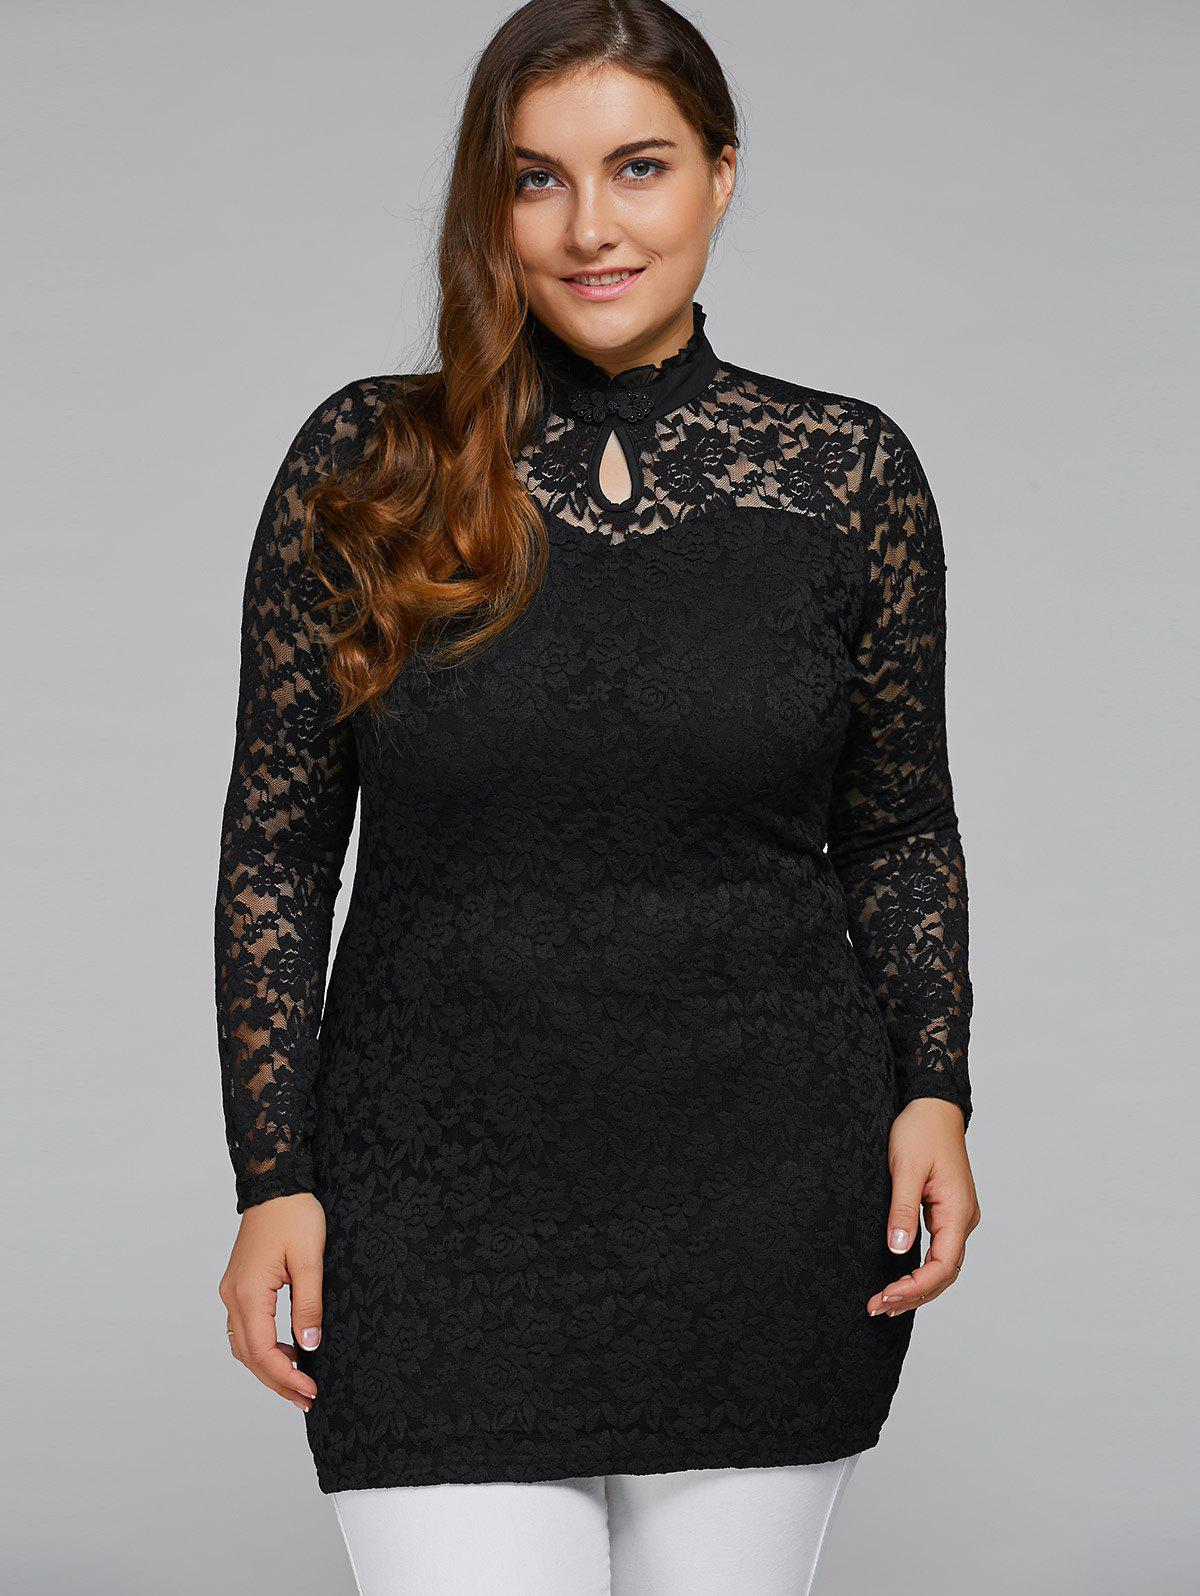 6b551f0a900 59% OFF  Plus Size High Neck Lace Dress